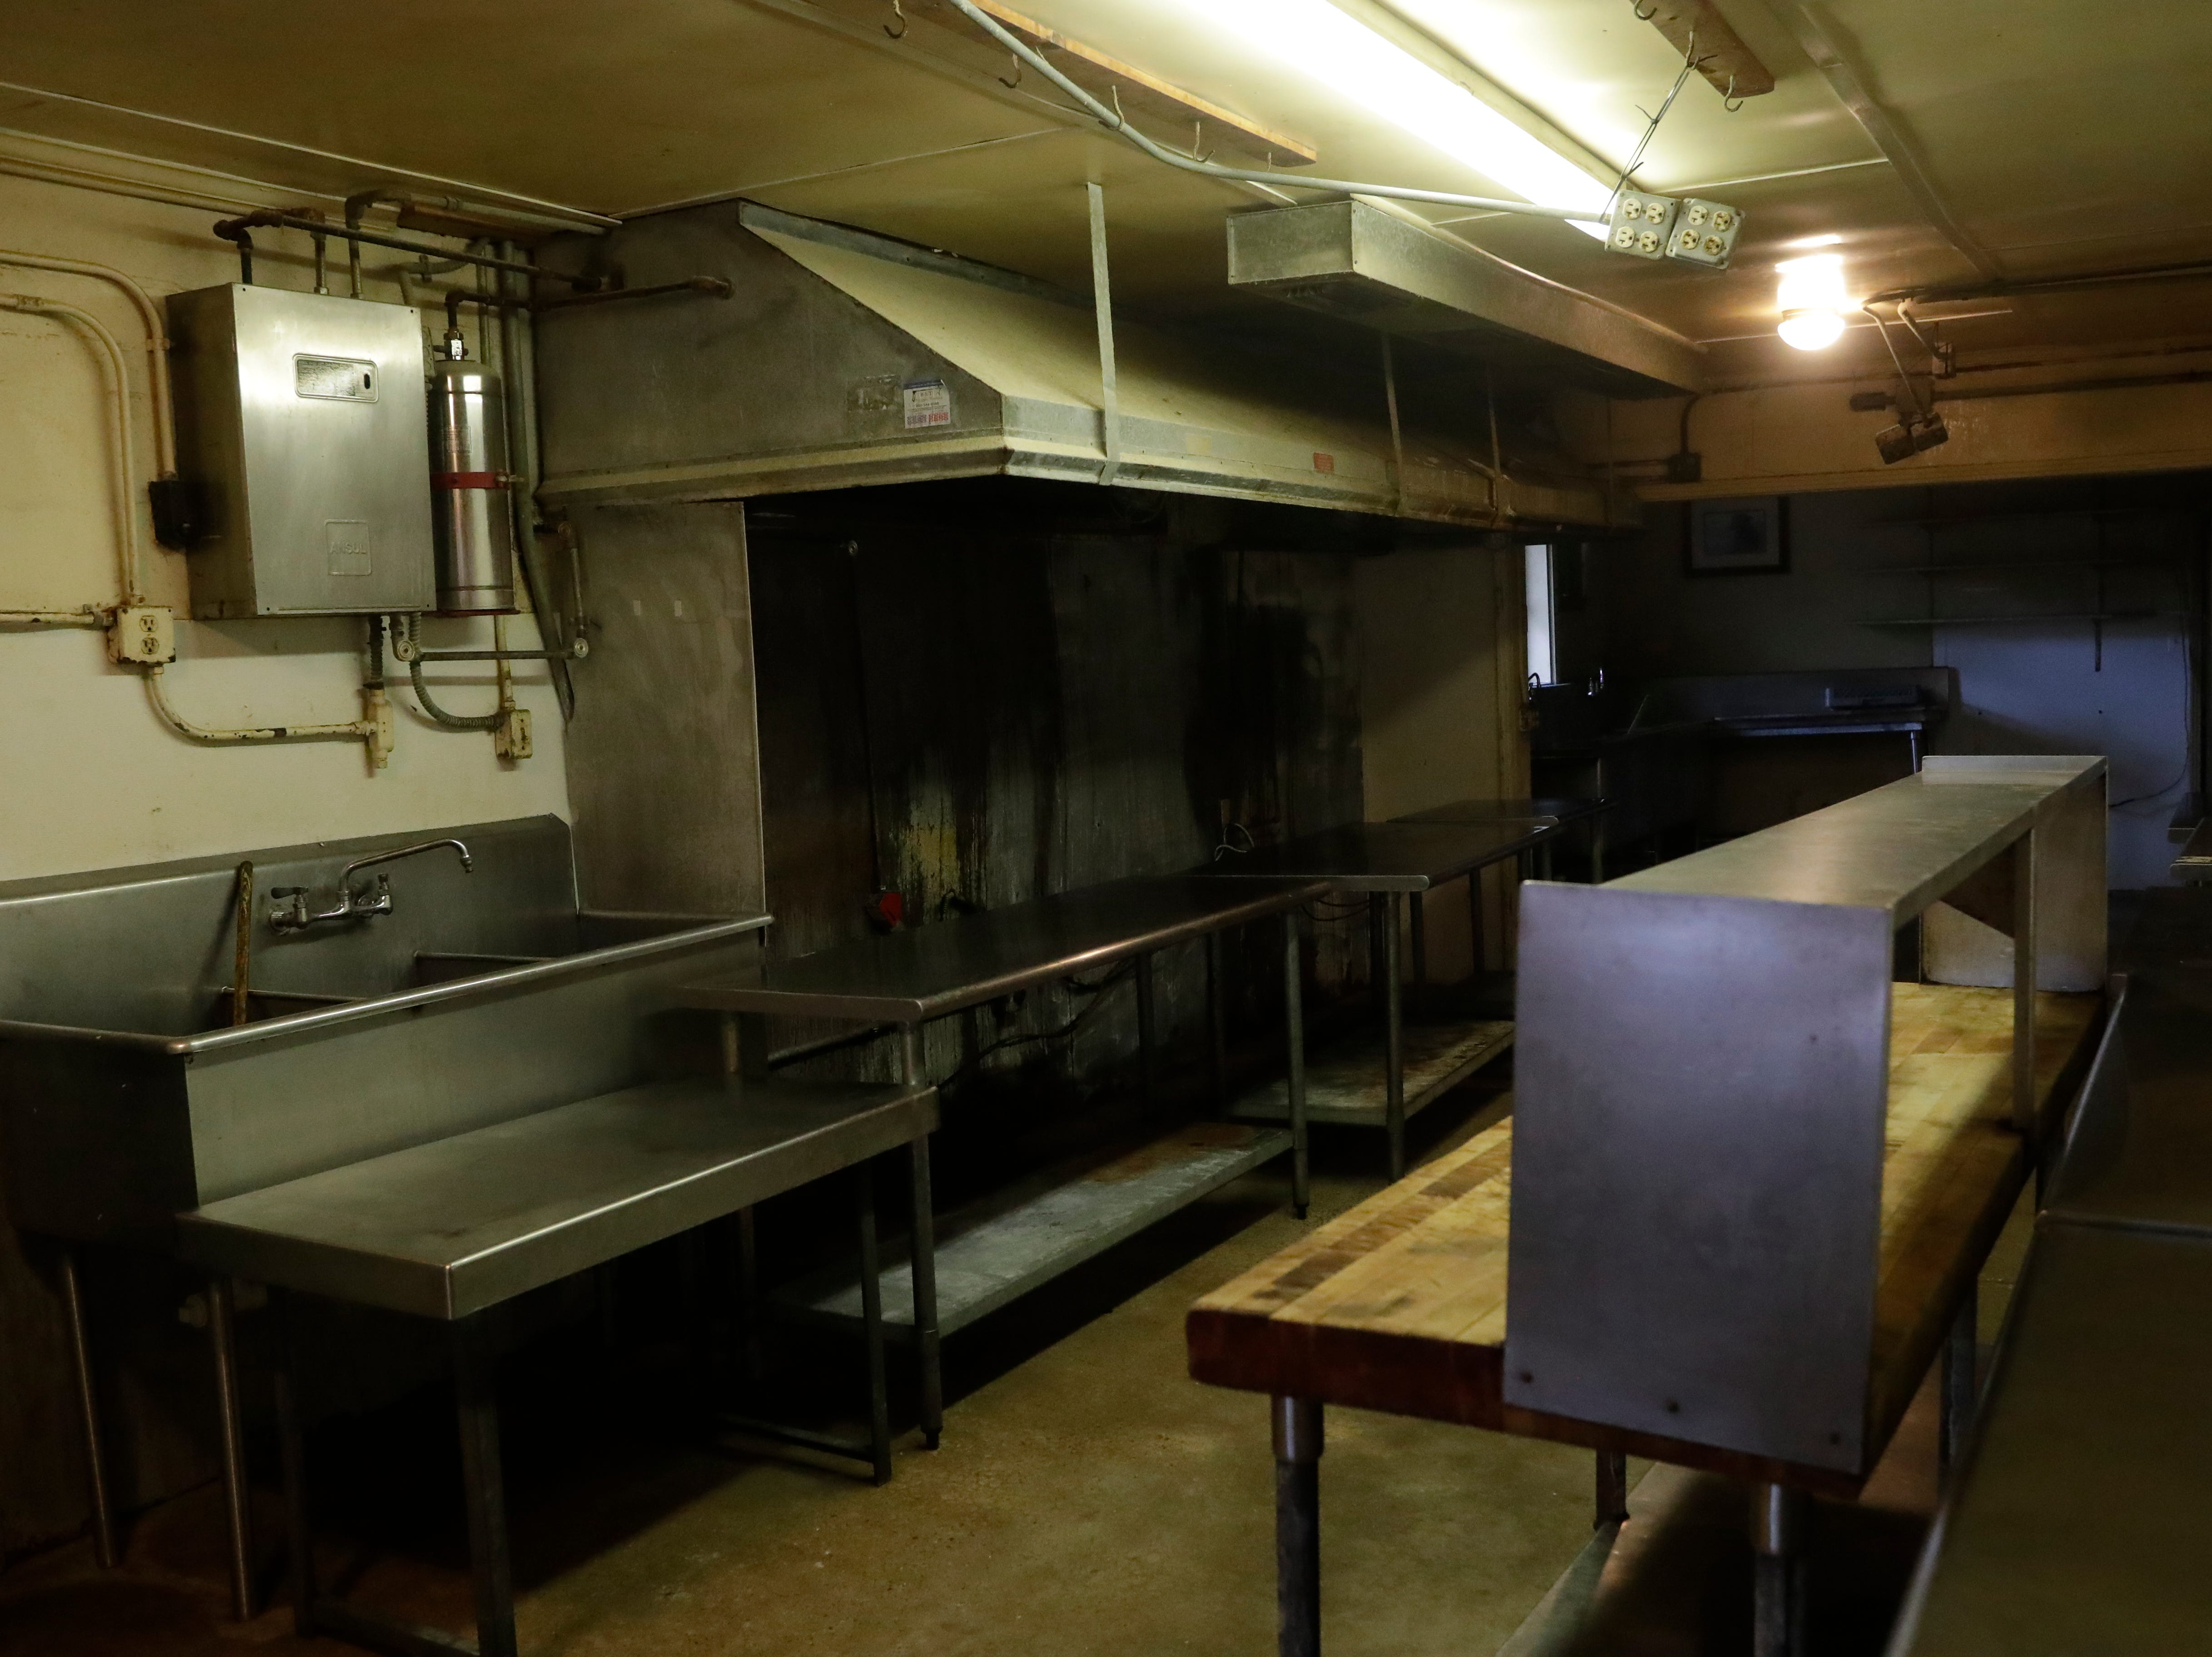 The inside of the kitchen at Spring Creek Restaurant is now bare, Tuesday Feb. 5, 2019, after being flooded and damaged by Hurricane Michael in Oct. 2018.